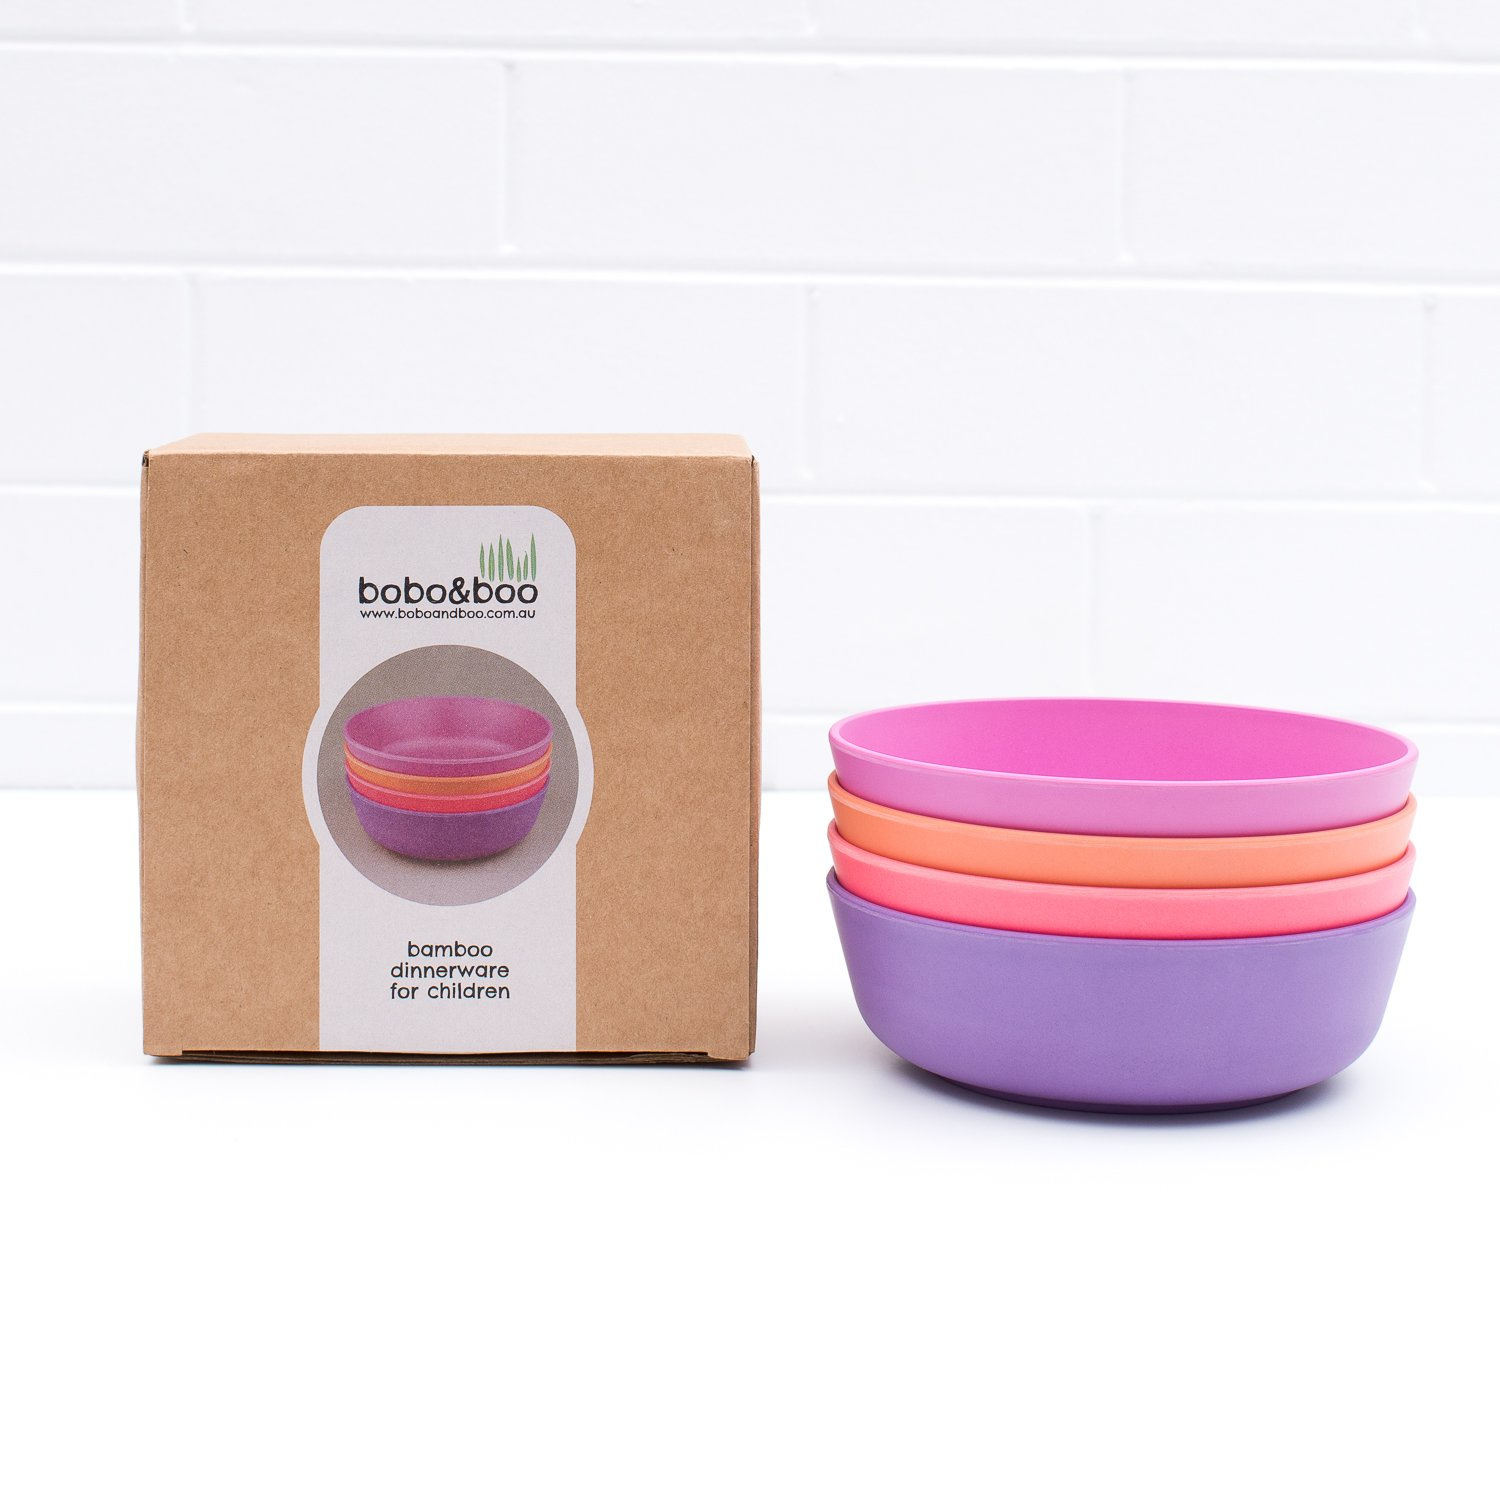 Bobo\u0026Boo Bamboo Kids Bowls Set of 4 Eco Friendly Toddler Bowls  Non Toxic  sc 1 st  Amazon.com & Amazon.com : Bobo\u0026Boo Bamboo Kids Plates Set of 4 Eco Friendly ...